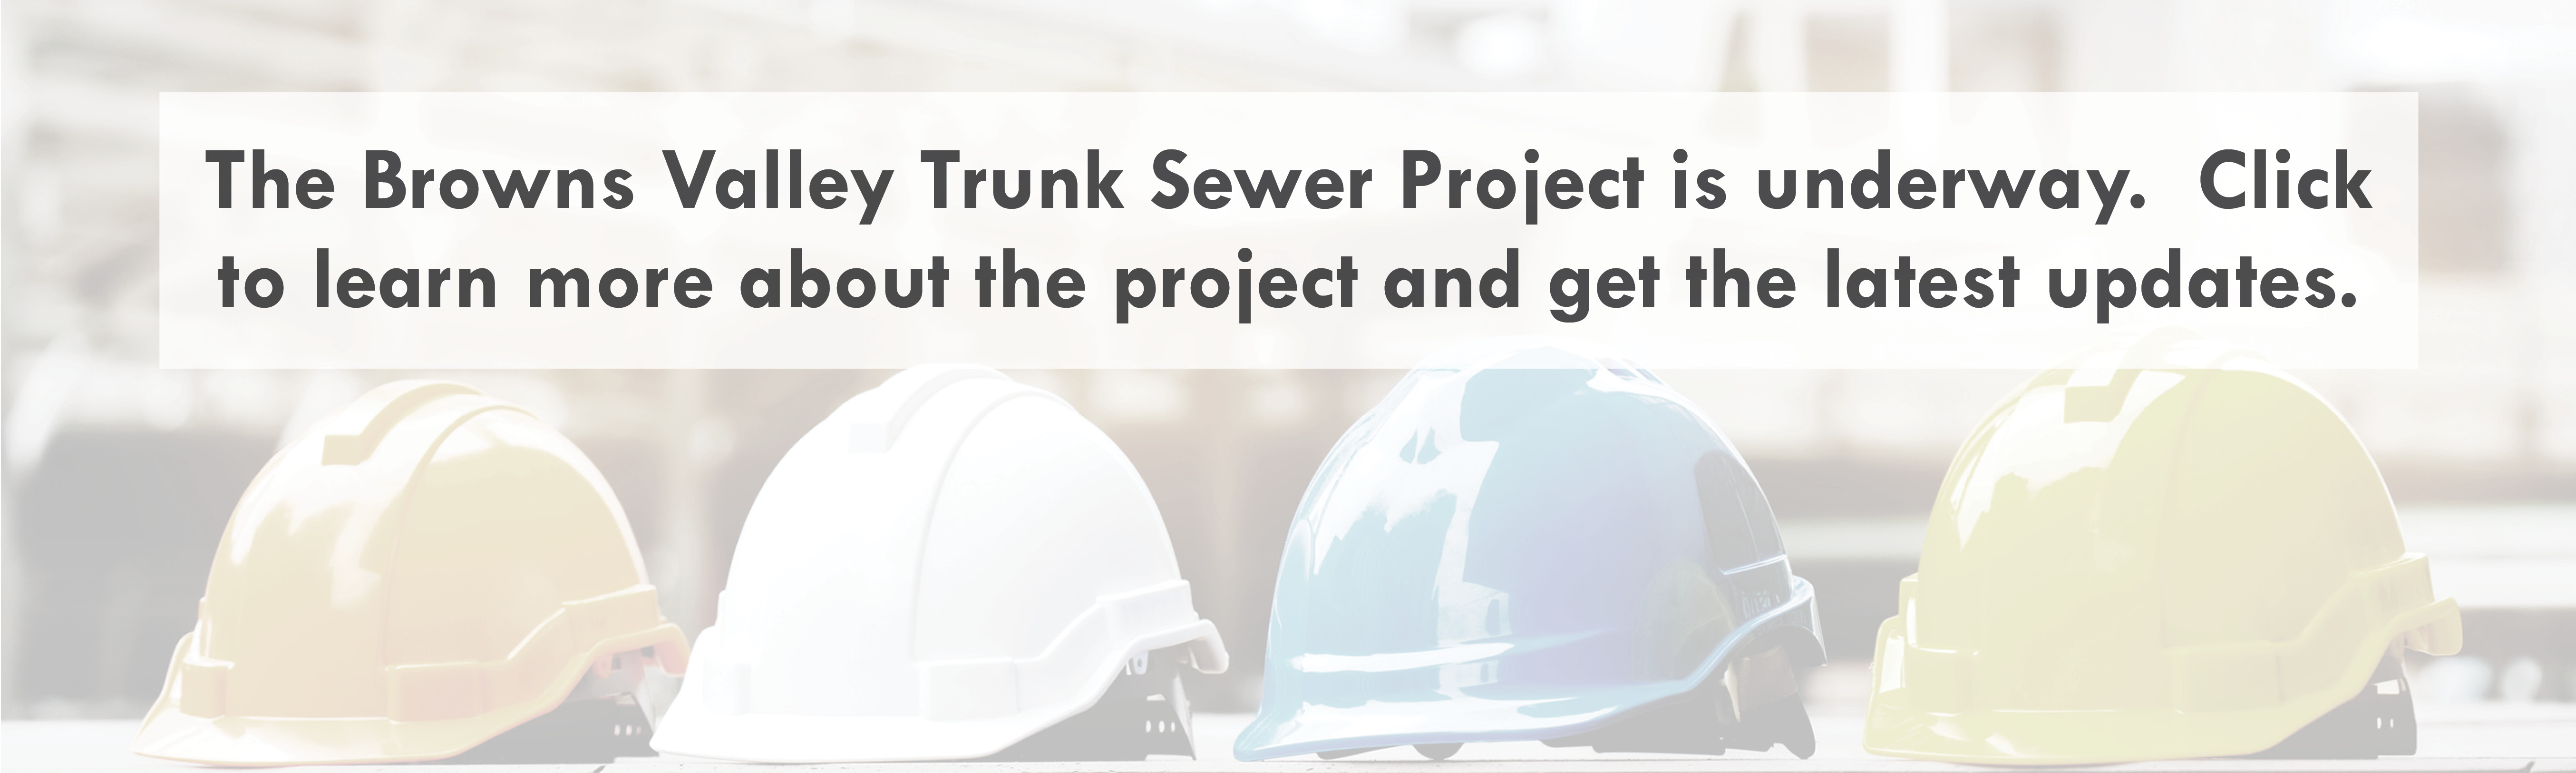 Click for more information about the Browns Valley Trunk Sewer Project